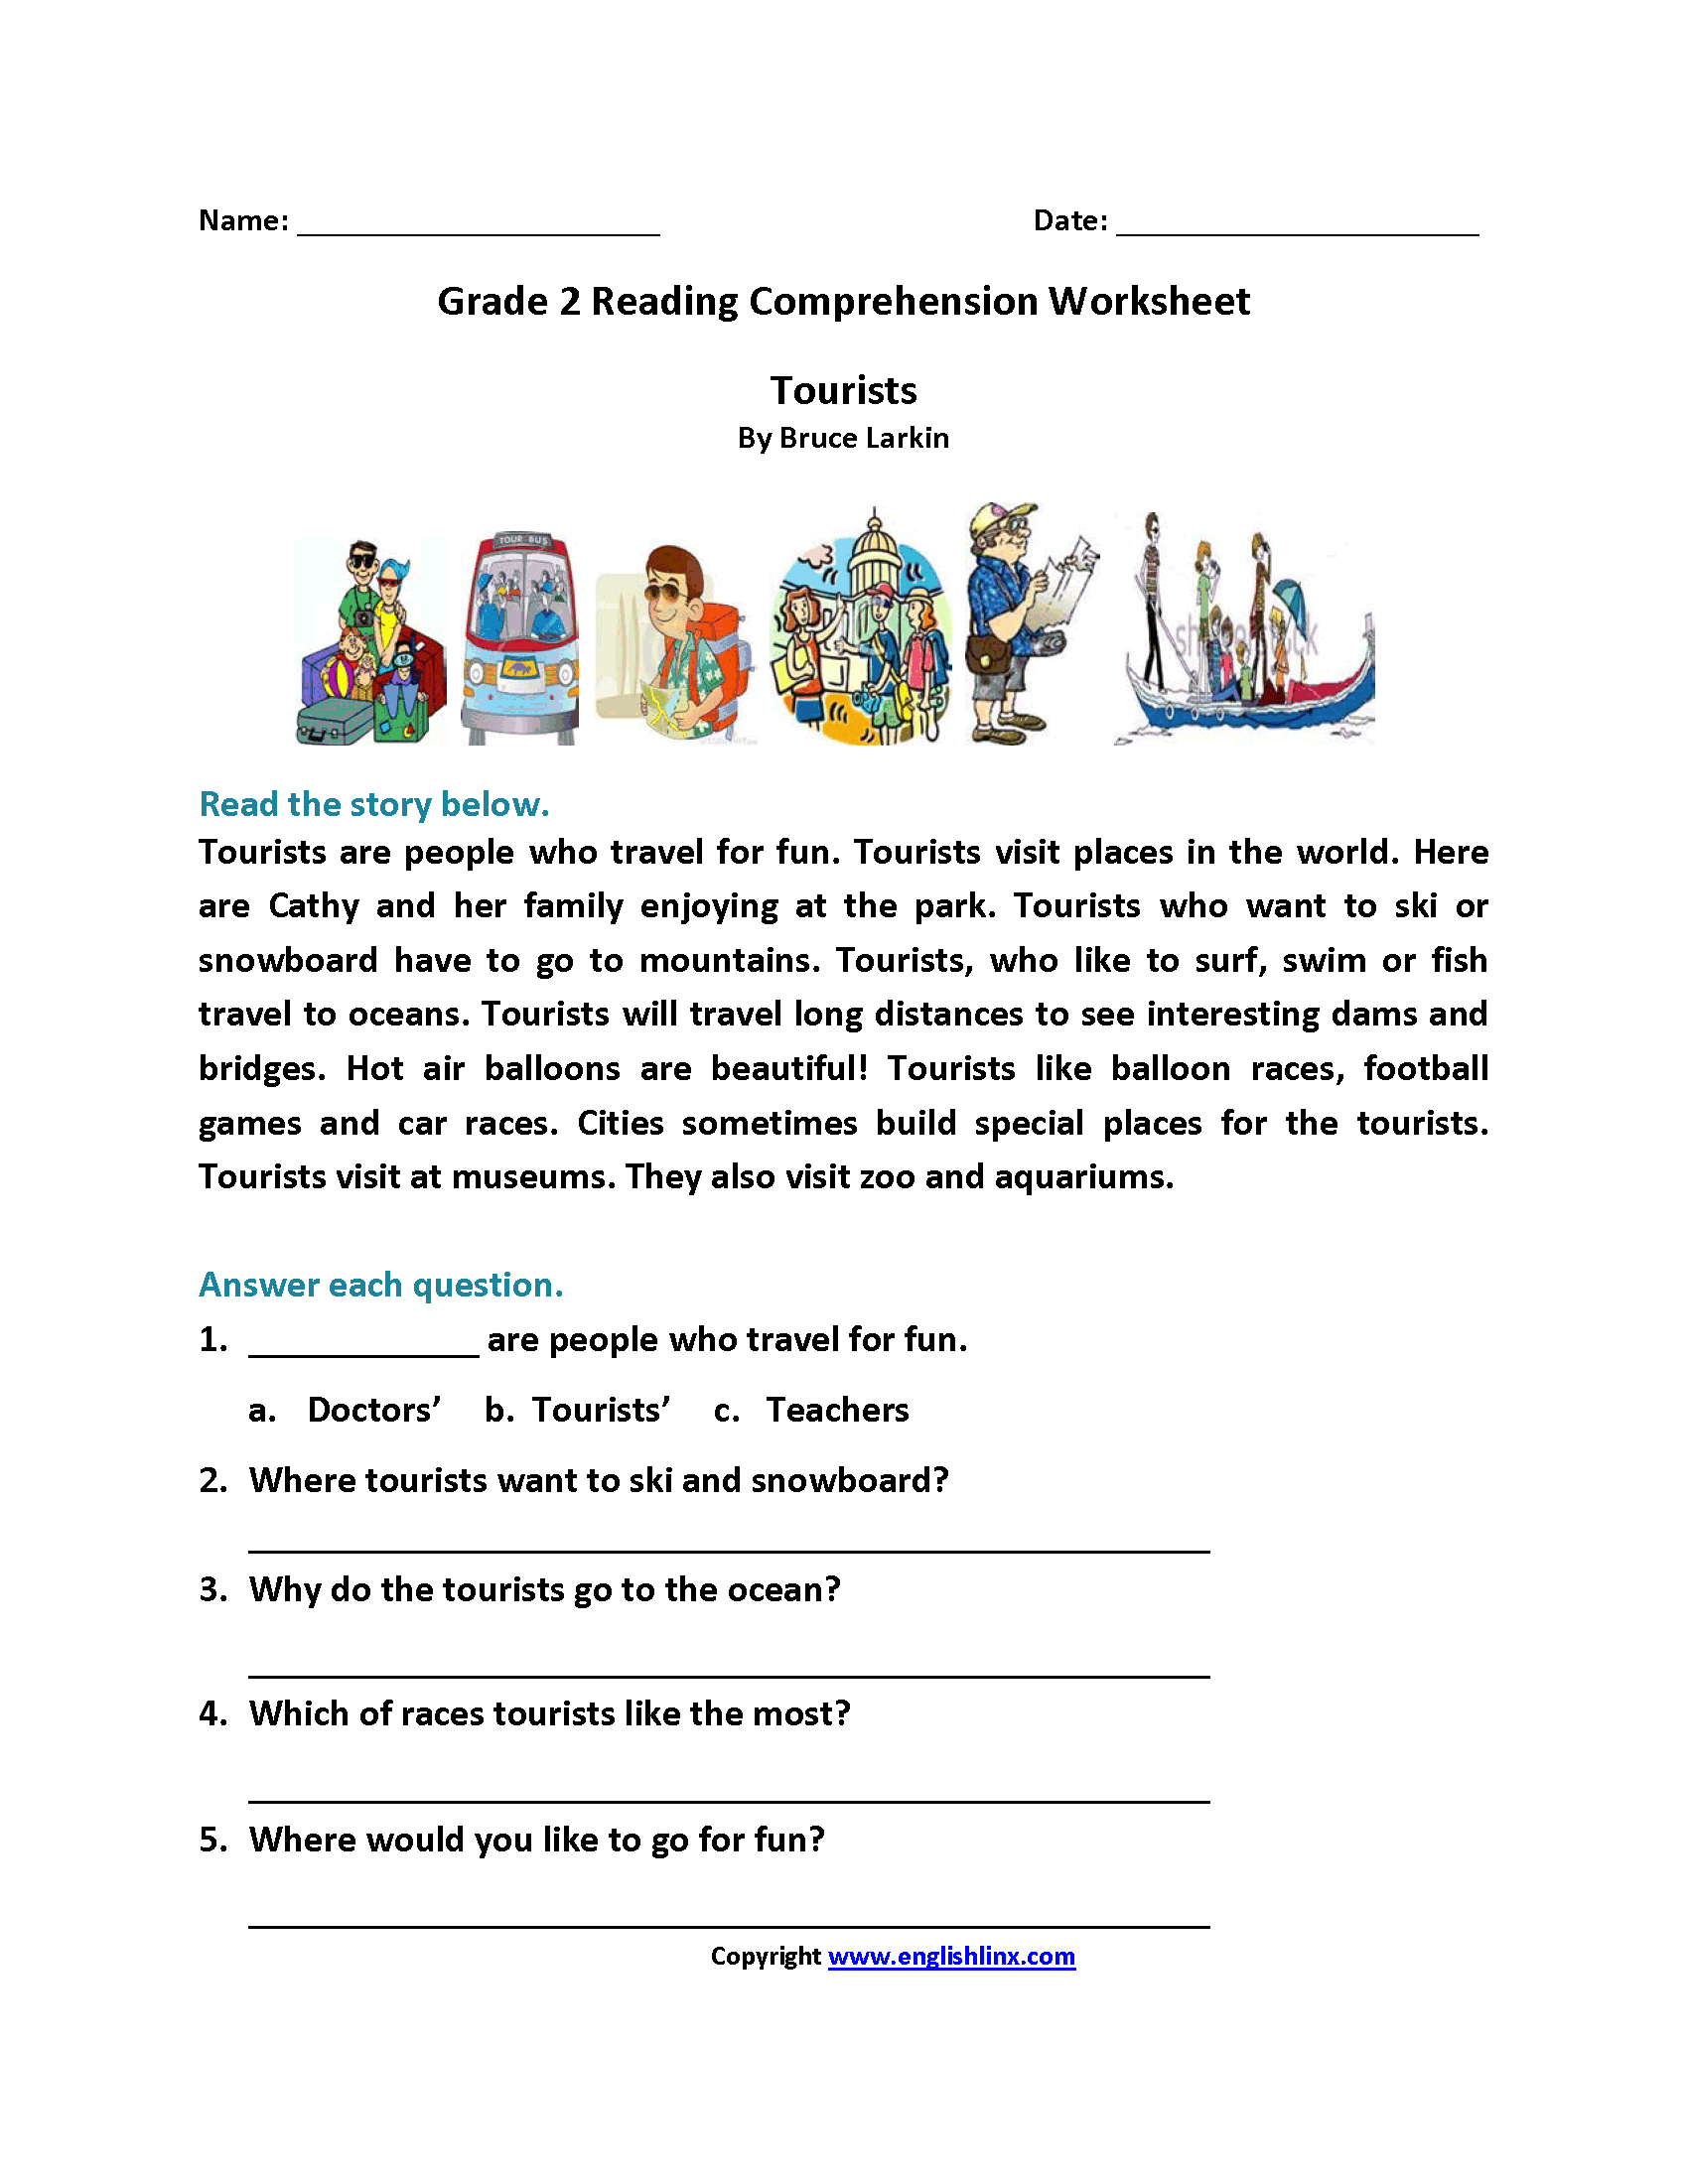 hight resolution of https://cute766.info/english-language-test-for-the-2nd-grade-worksheet-free-esl-printable-worksheets-made-by-teachers/